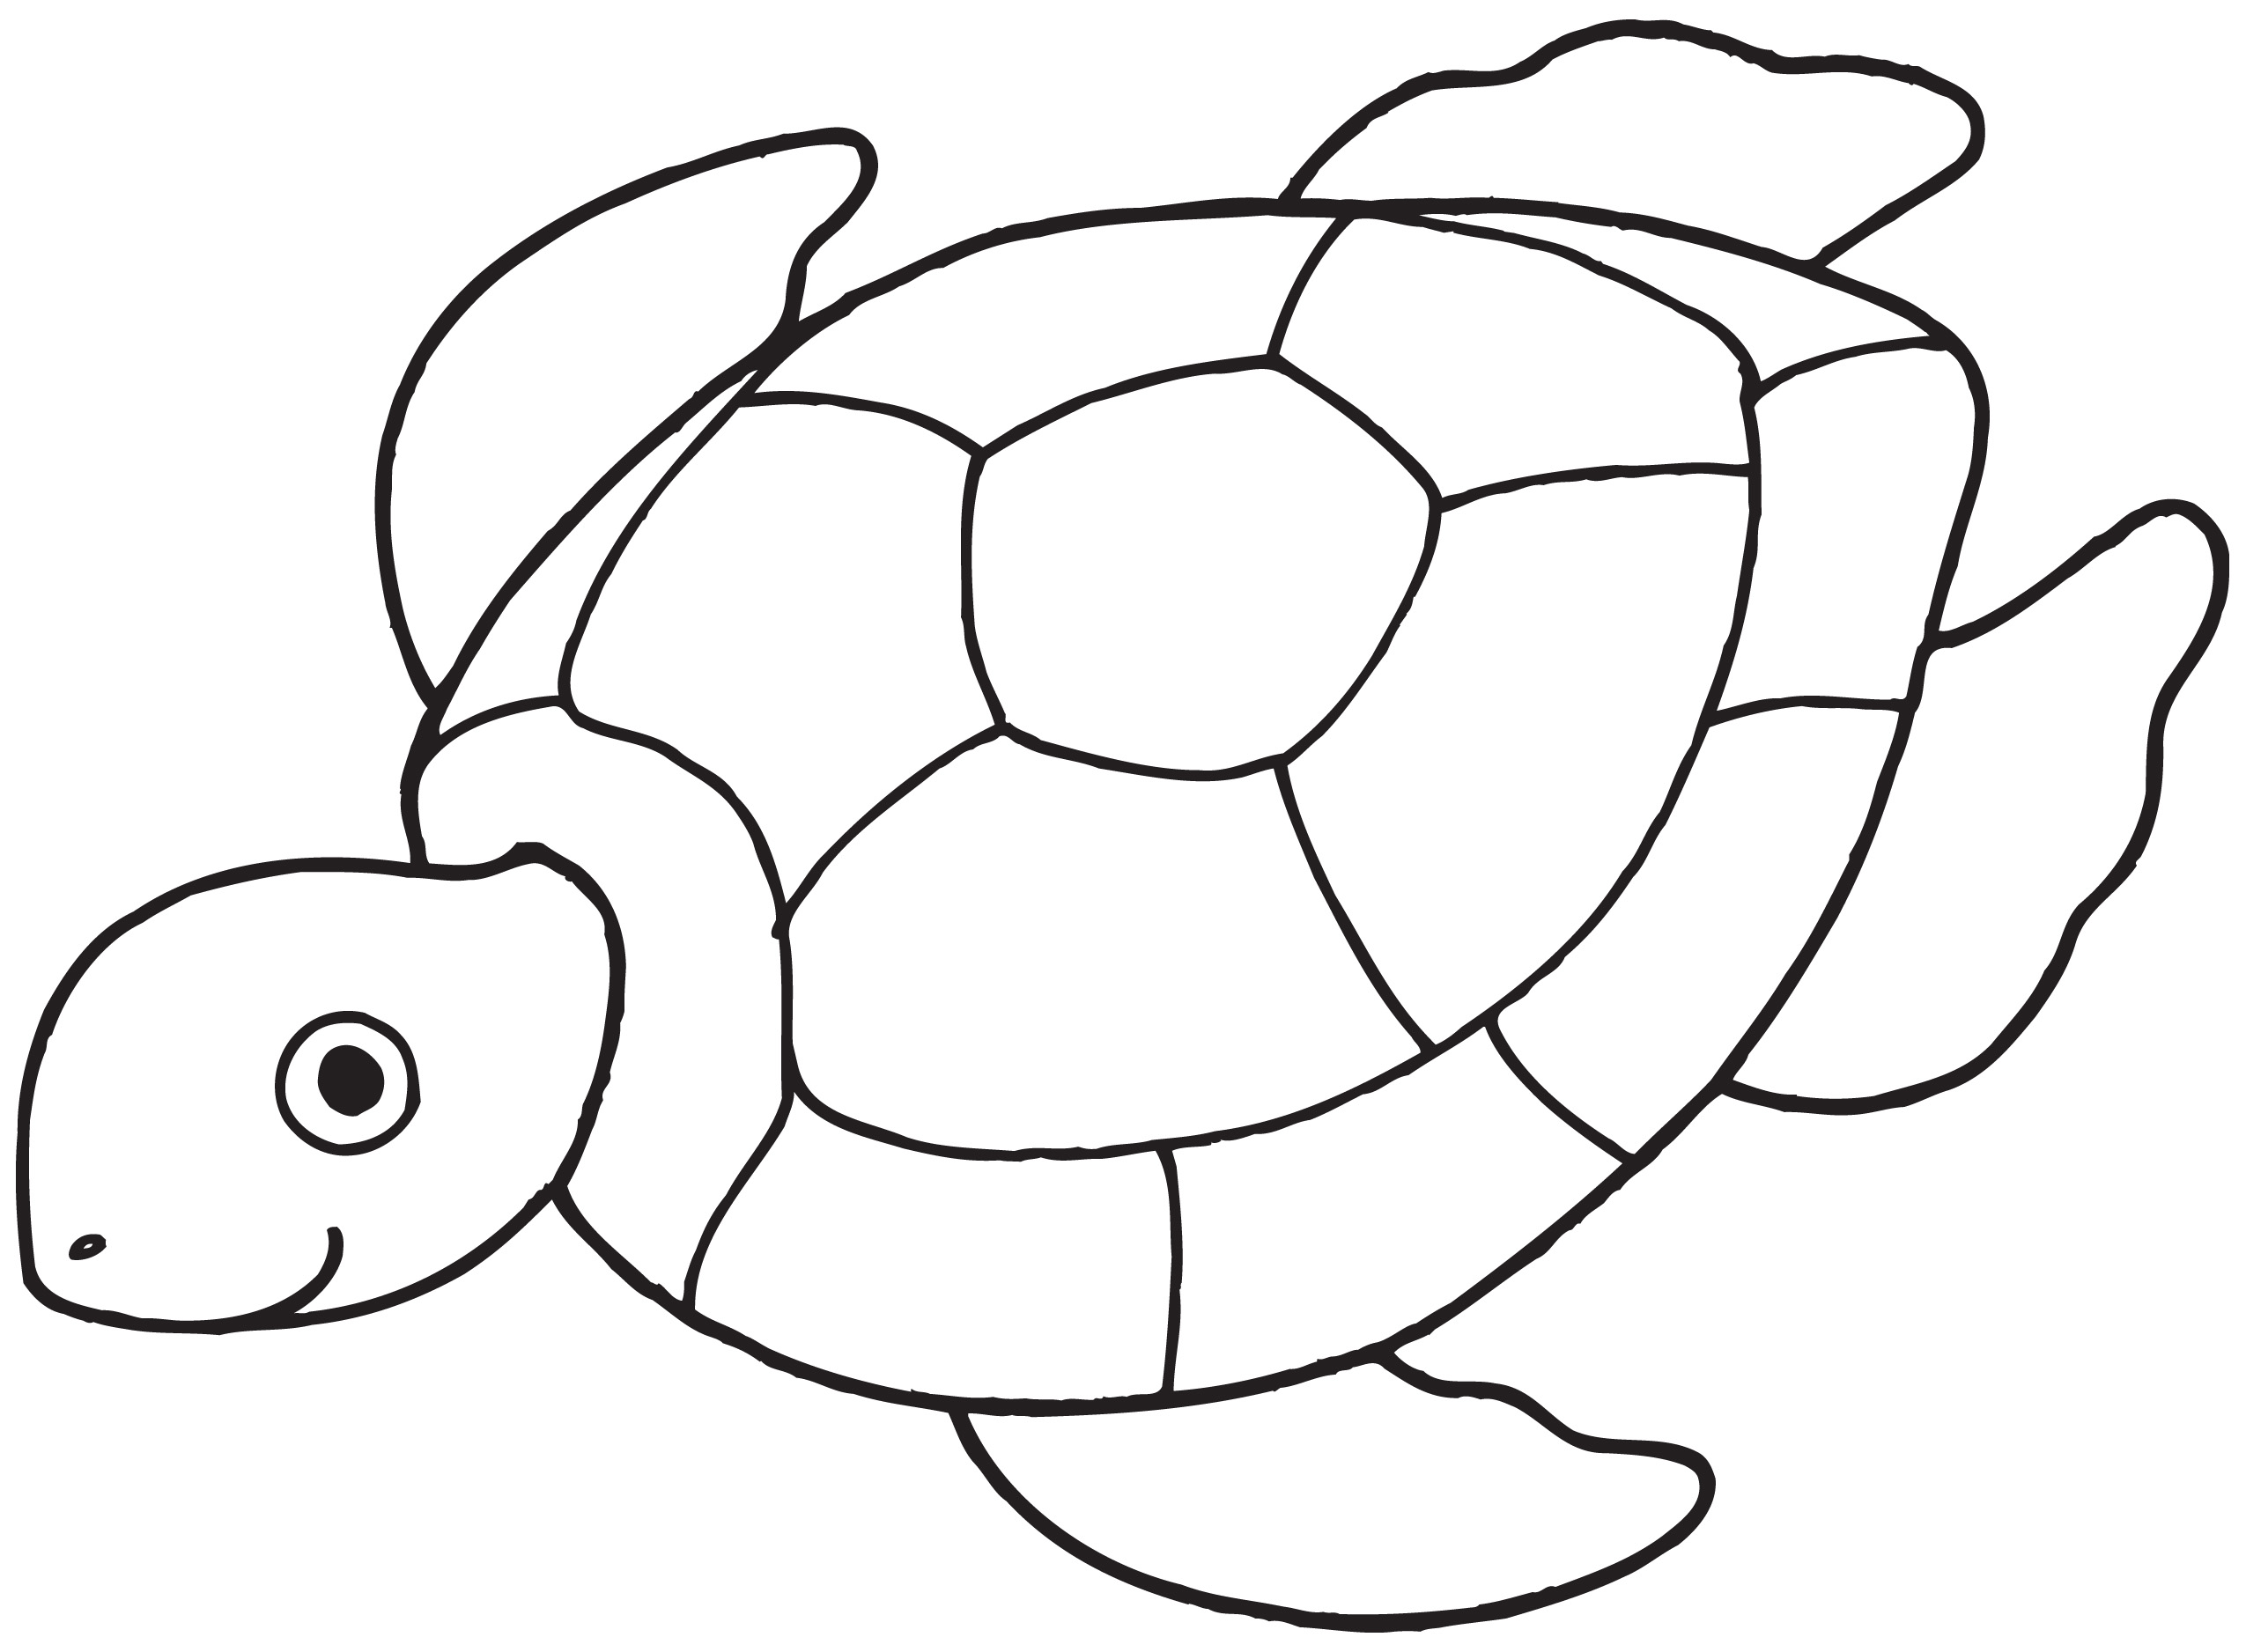 Turtle Outline Clipart - Clipart Kid